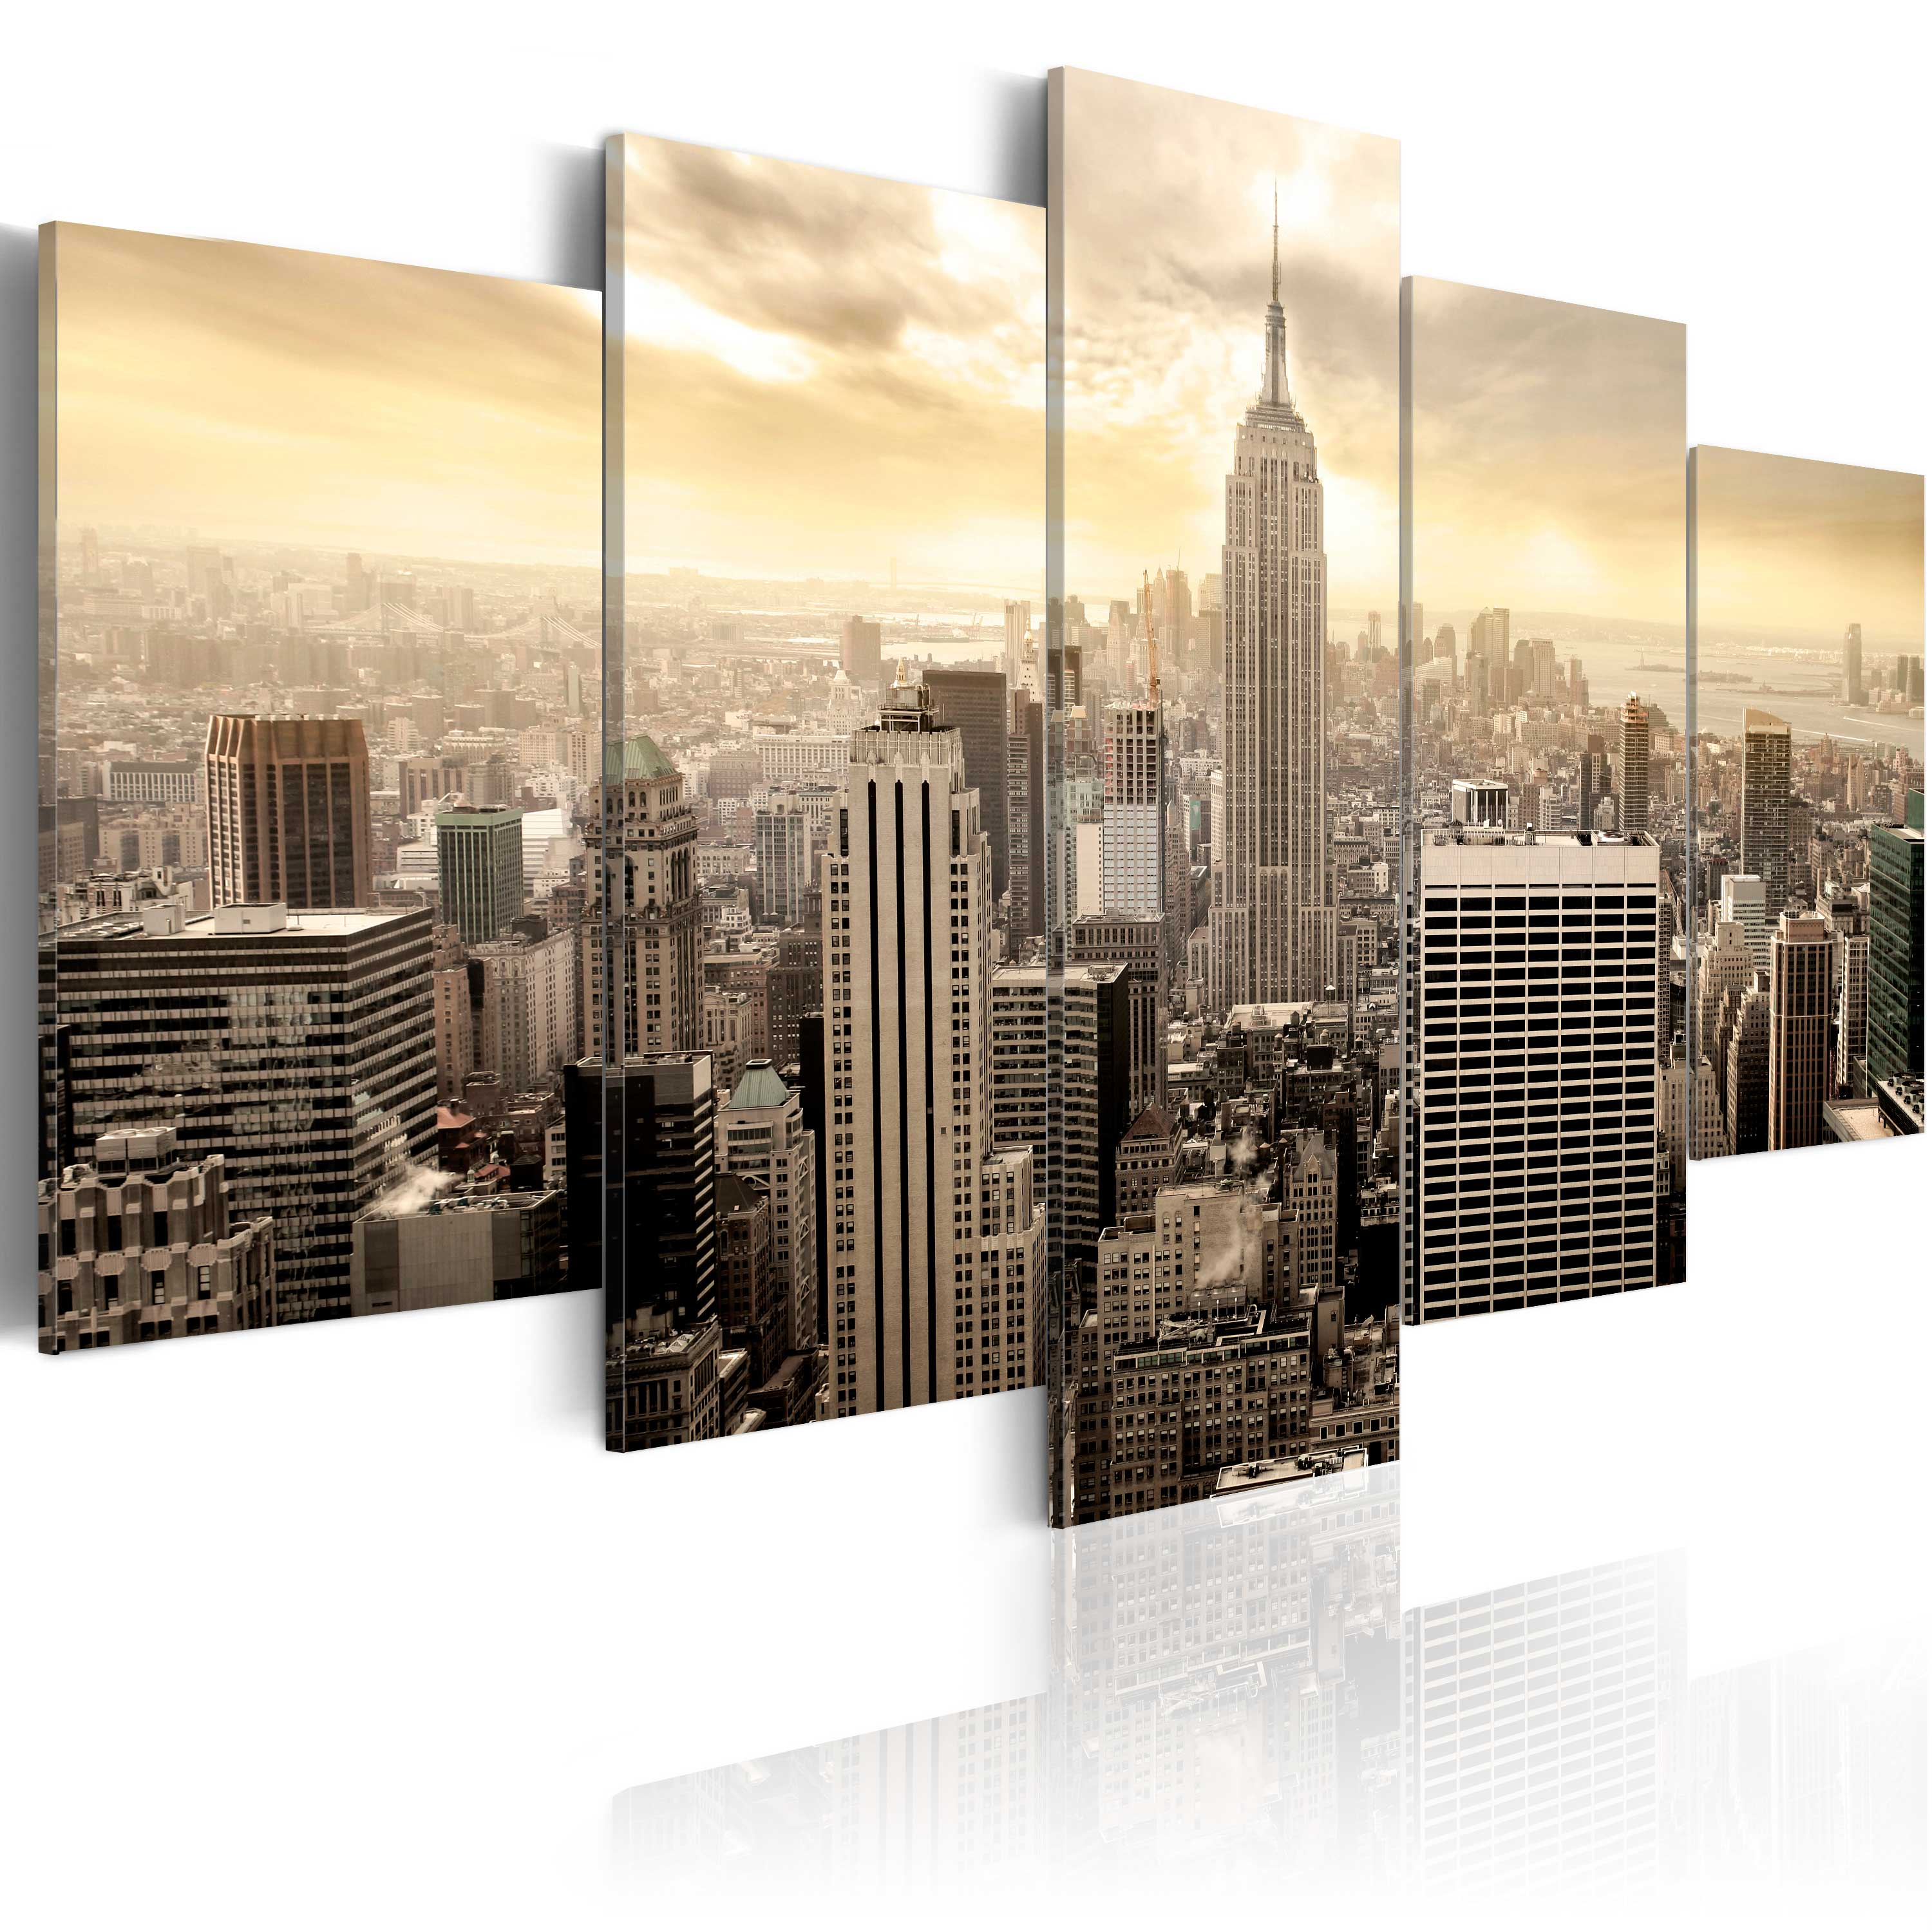 wandbilder xxl new york skyline leinwand bilder 5 teilig wohnzimmer d b 0006 b m ebay. Black Bedroom Furniture Sets. Home Design Ideas